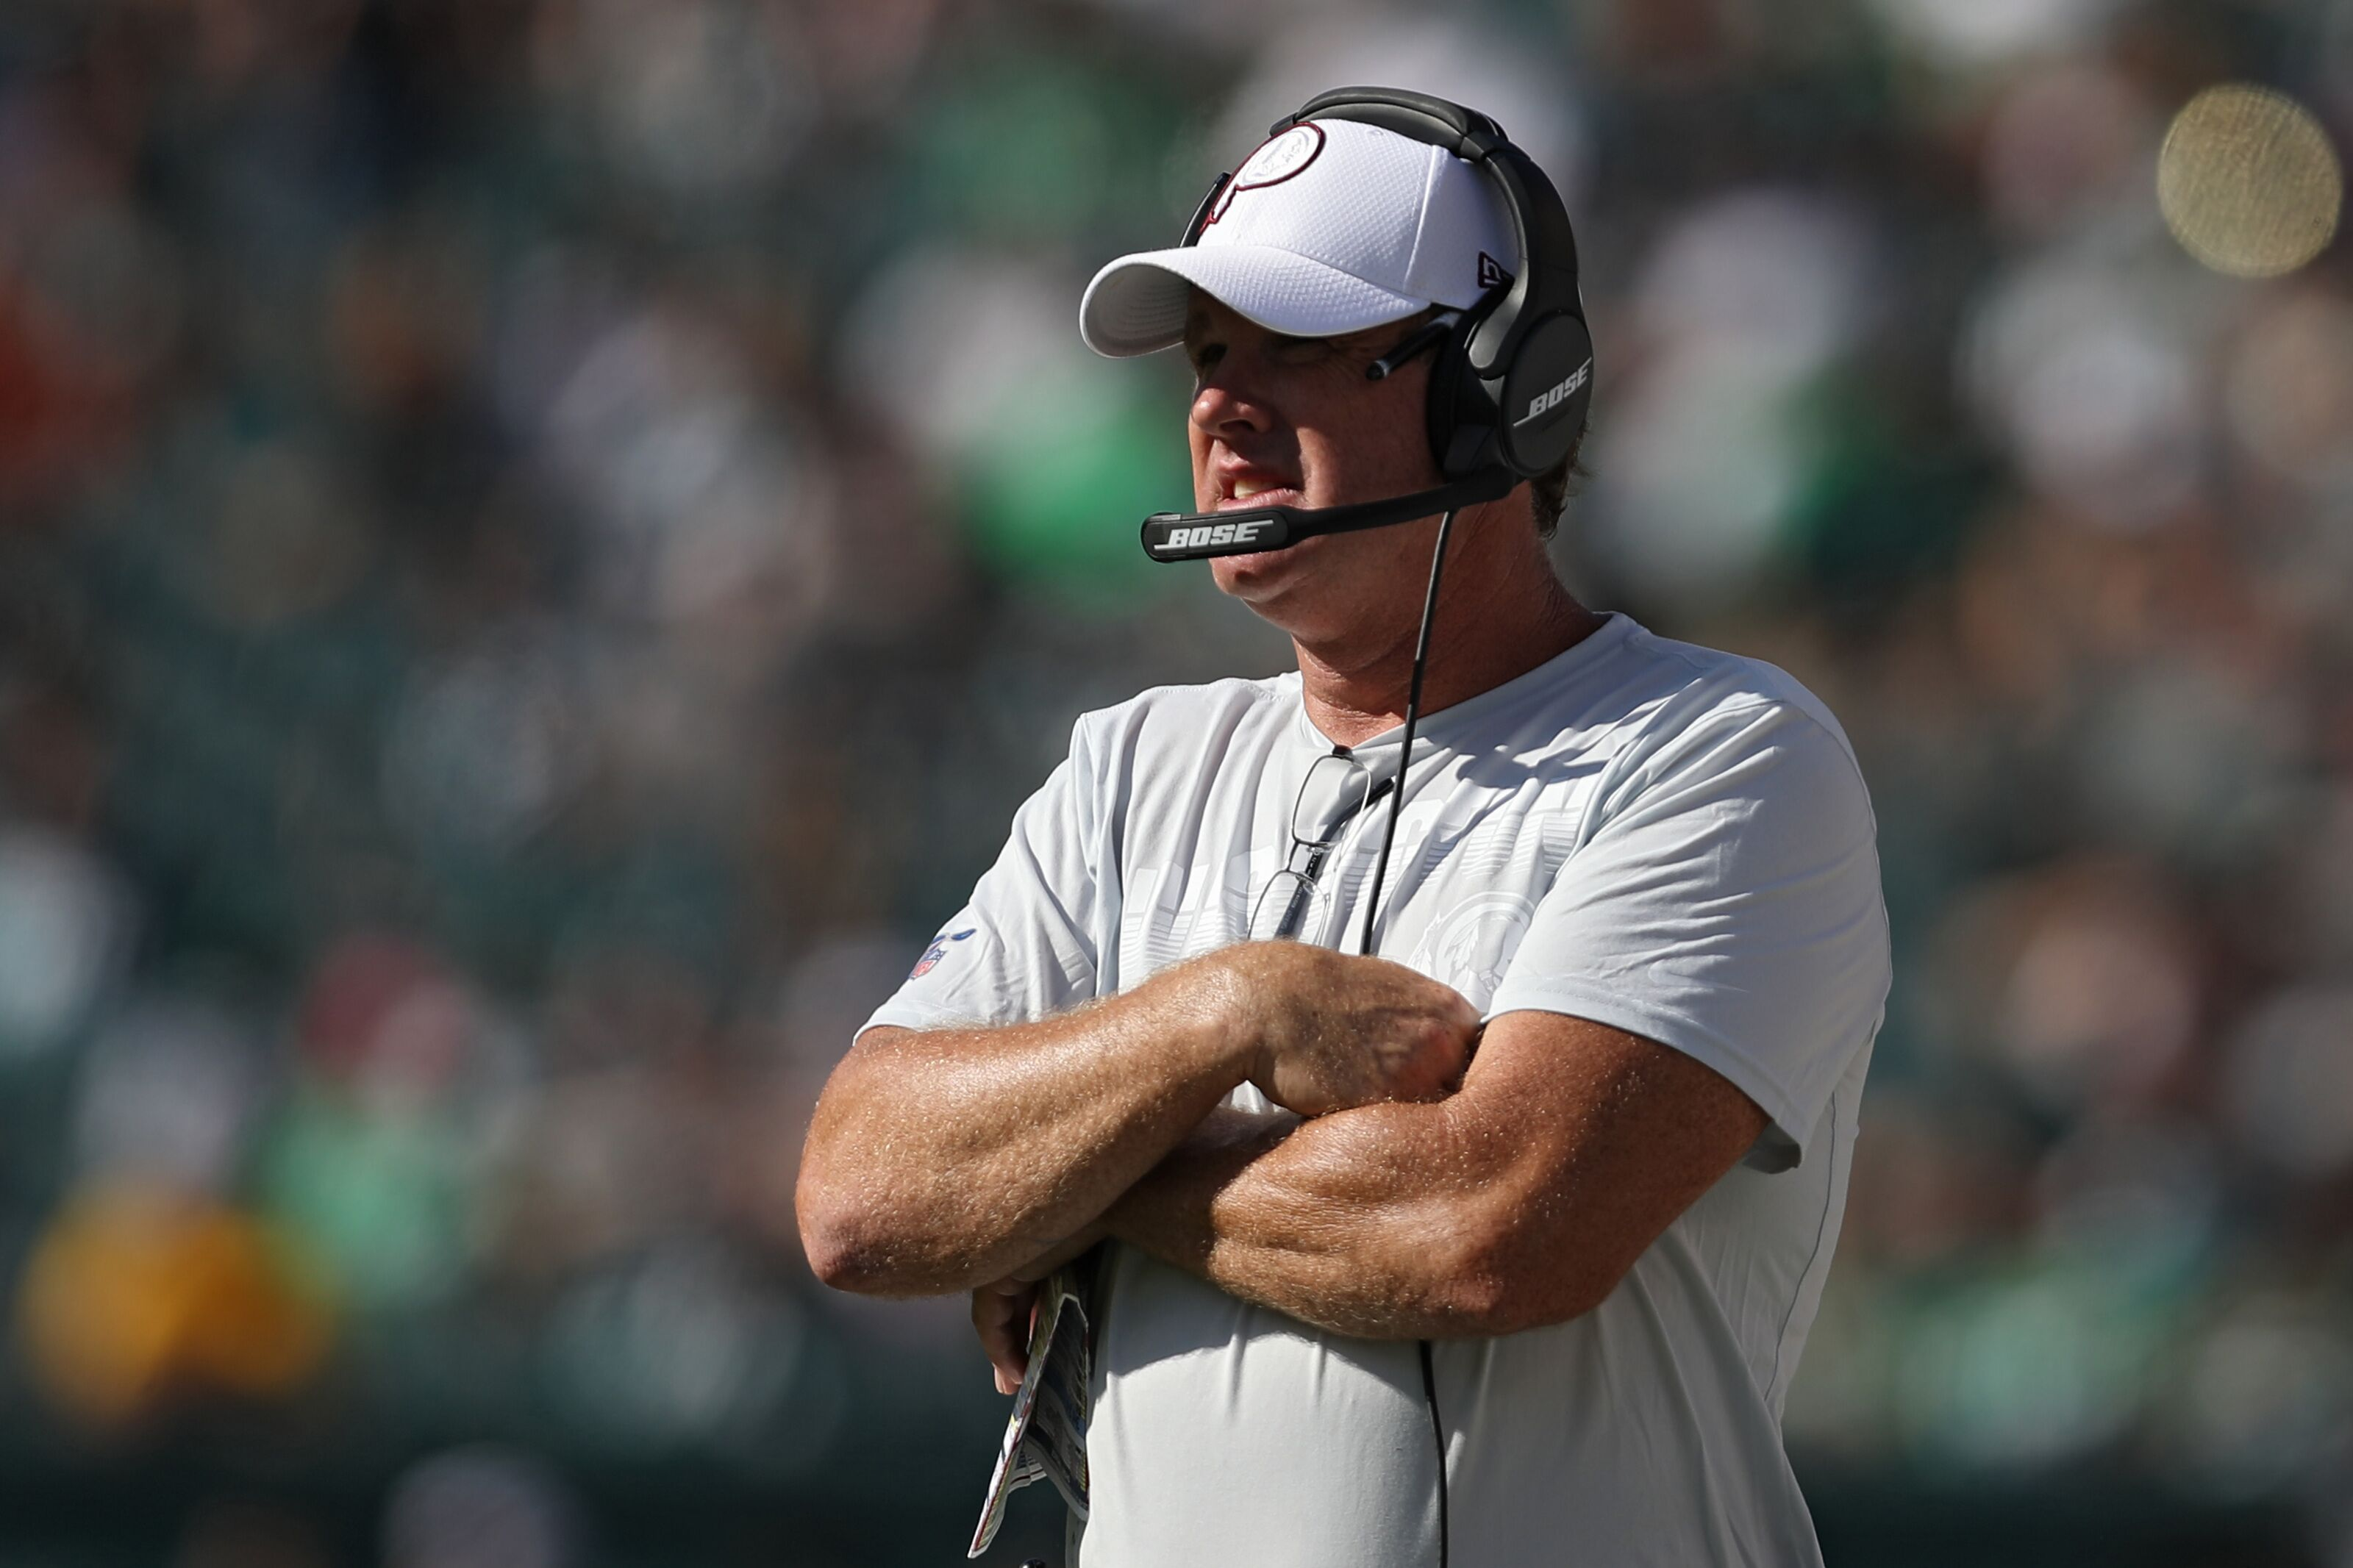 Jaguars to interview Jay Gruden for vacant O.C. position